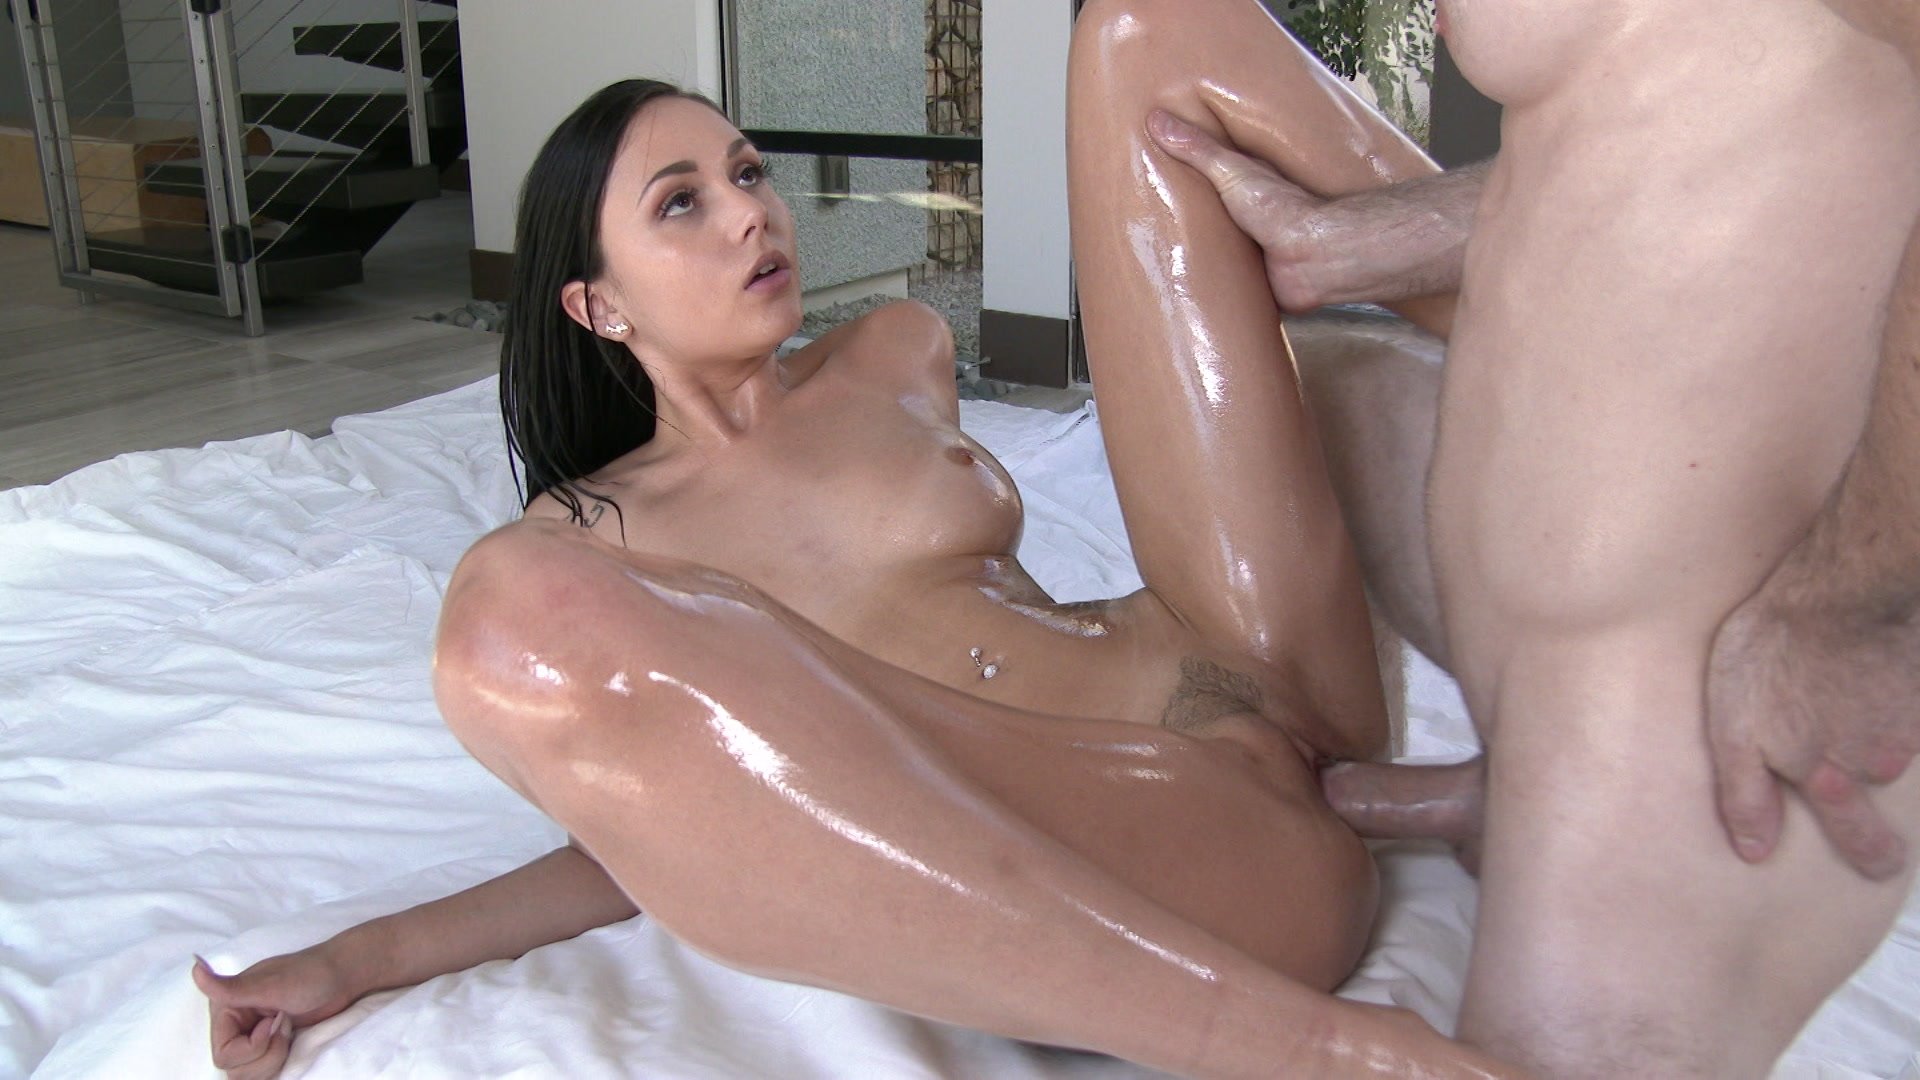 Lubed cock stroked until it spurts